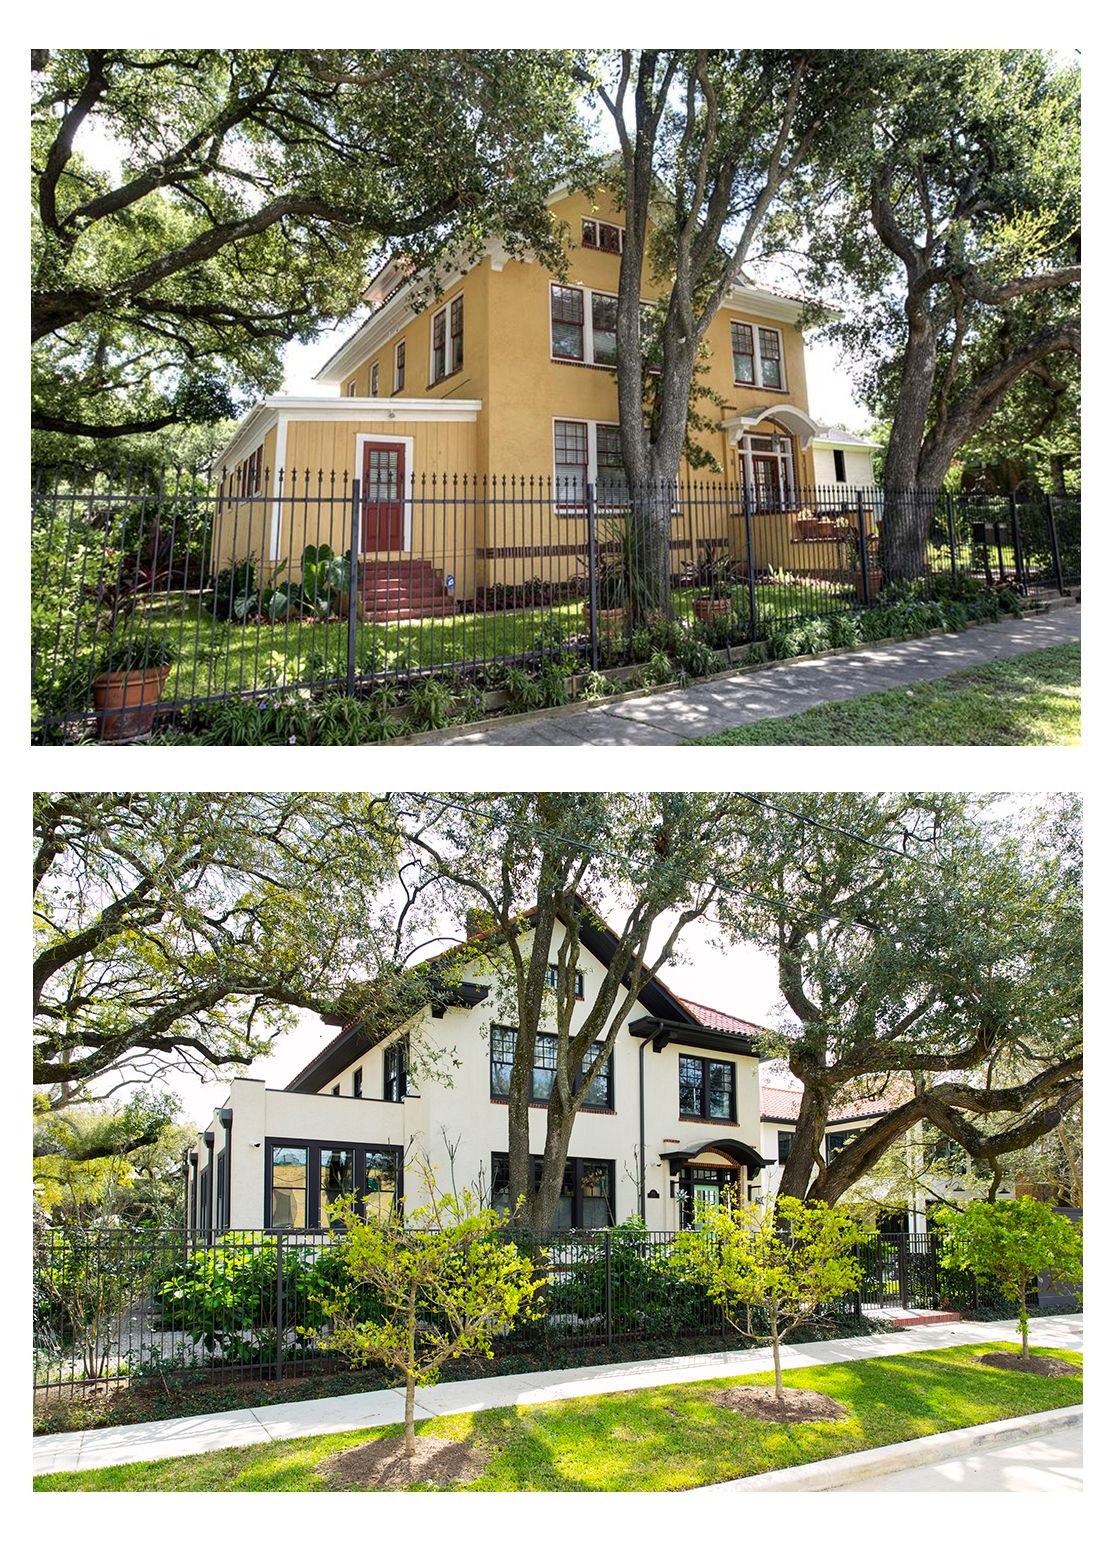 You Need to See How a Sad 1920s House Was Restored to a Colorful, Pattern-Filled Home